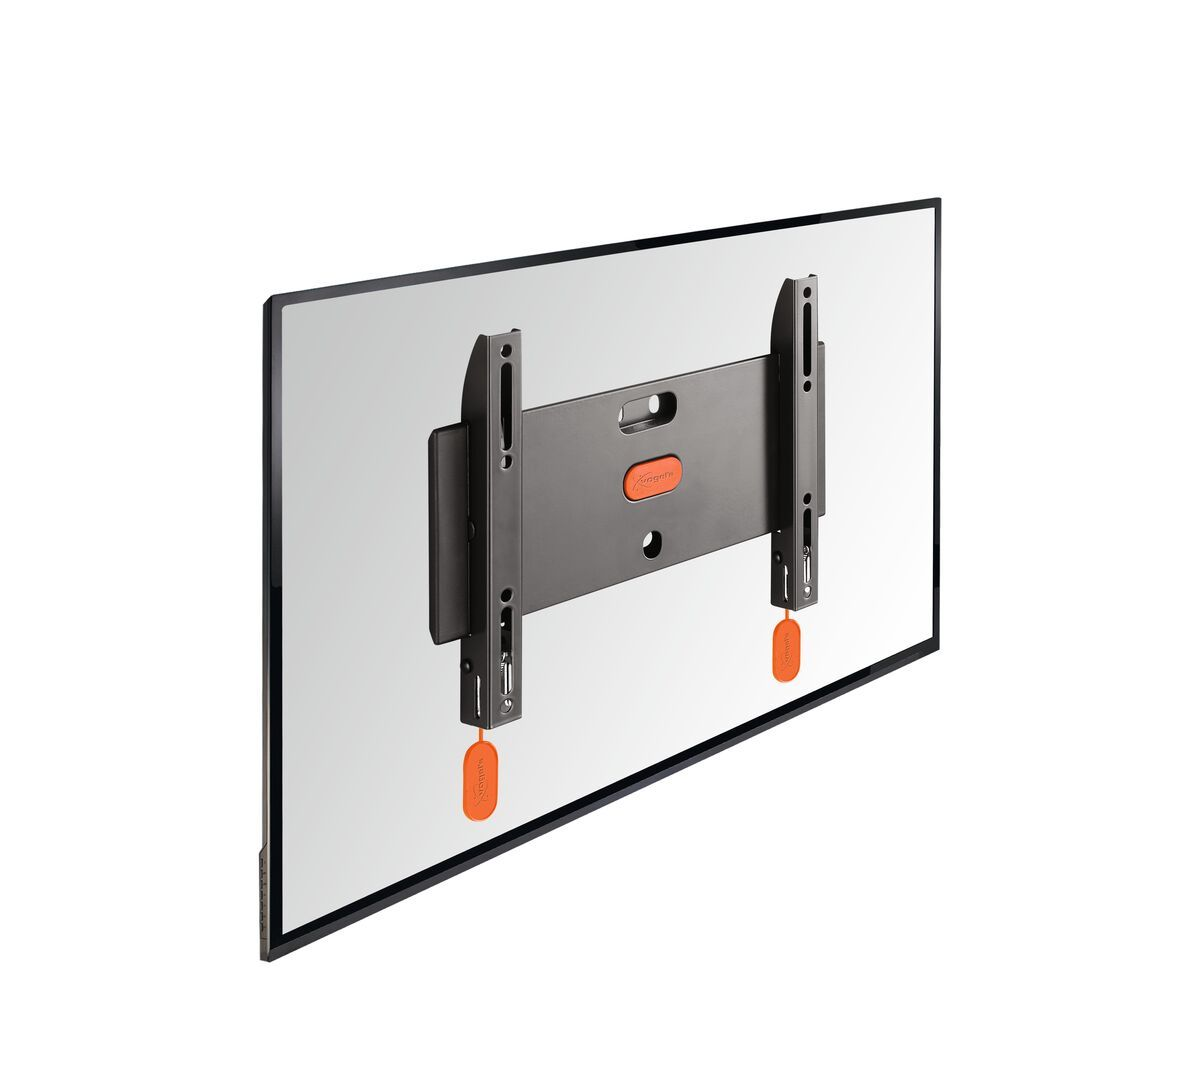 Vogel's BASE 05 S Fixed TV Wall Mount - Suitable for 19 up to 43 inch TVs up to 20 kg - Product